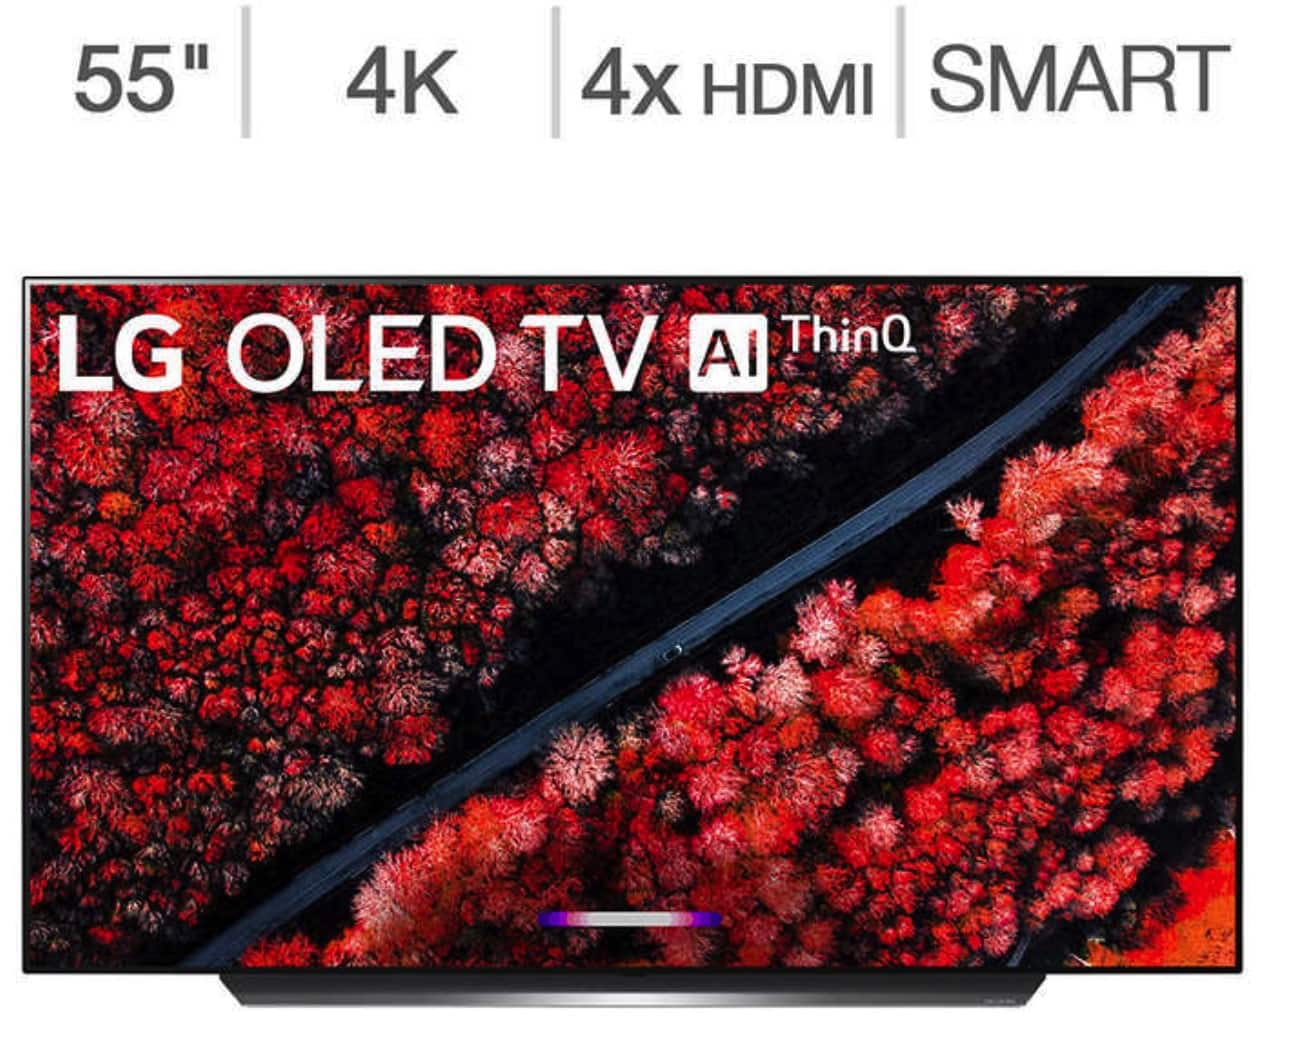 "LG 55"" Class (54.6"" Diag.) 4K Ultra HD OLED TV Model  OLED55C9AUA + Free S&H + 3 Year Square Trade Warranty free $1574.99"